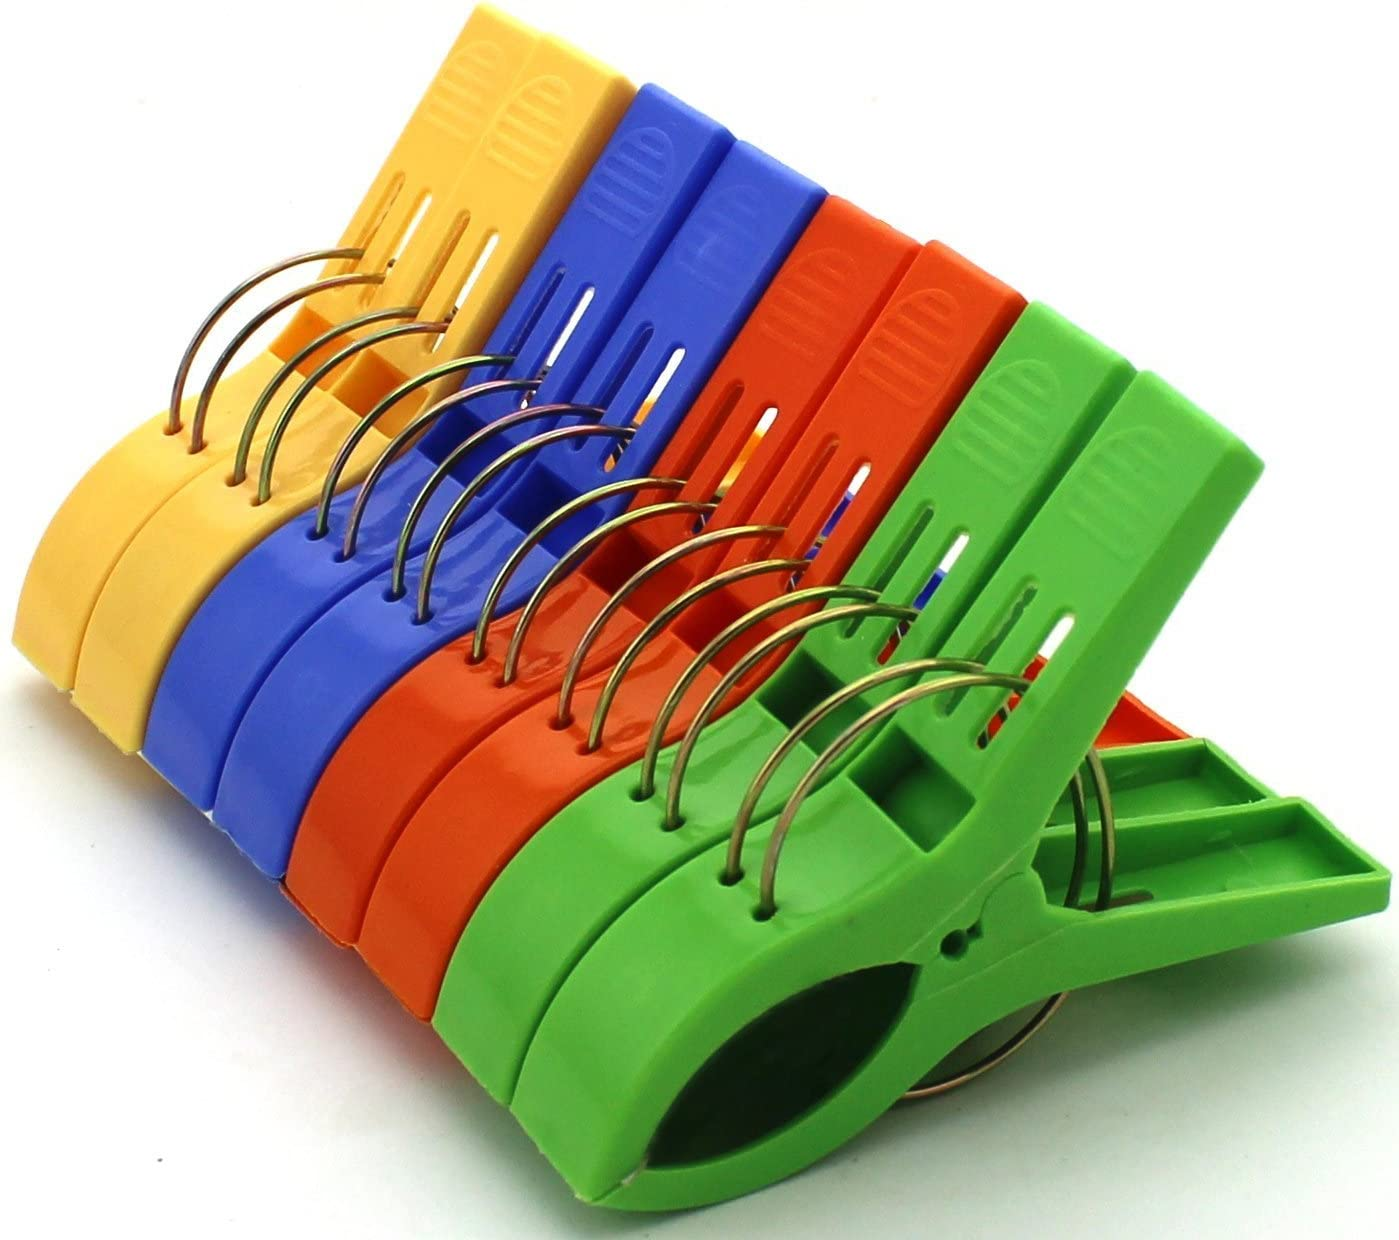 HAZOULEN Set of 8 Beach Bath Towel Clips in 4 Fun Bright Colors for Beach Chair